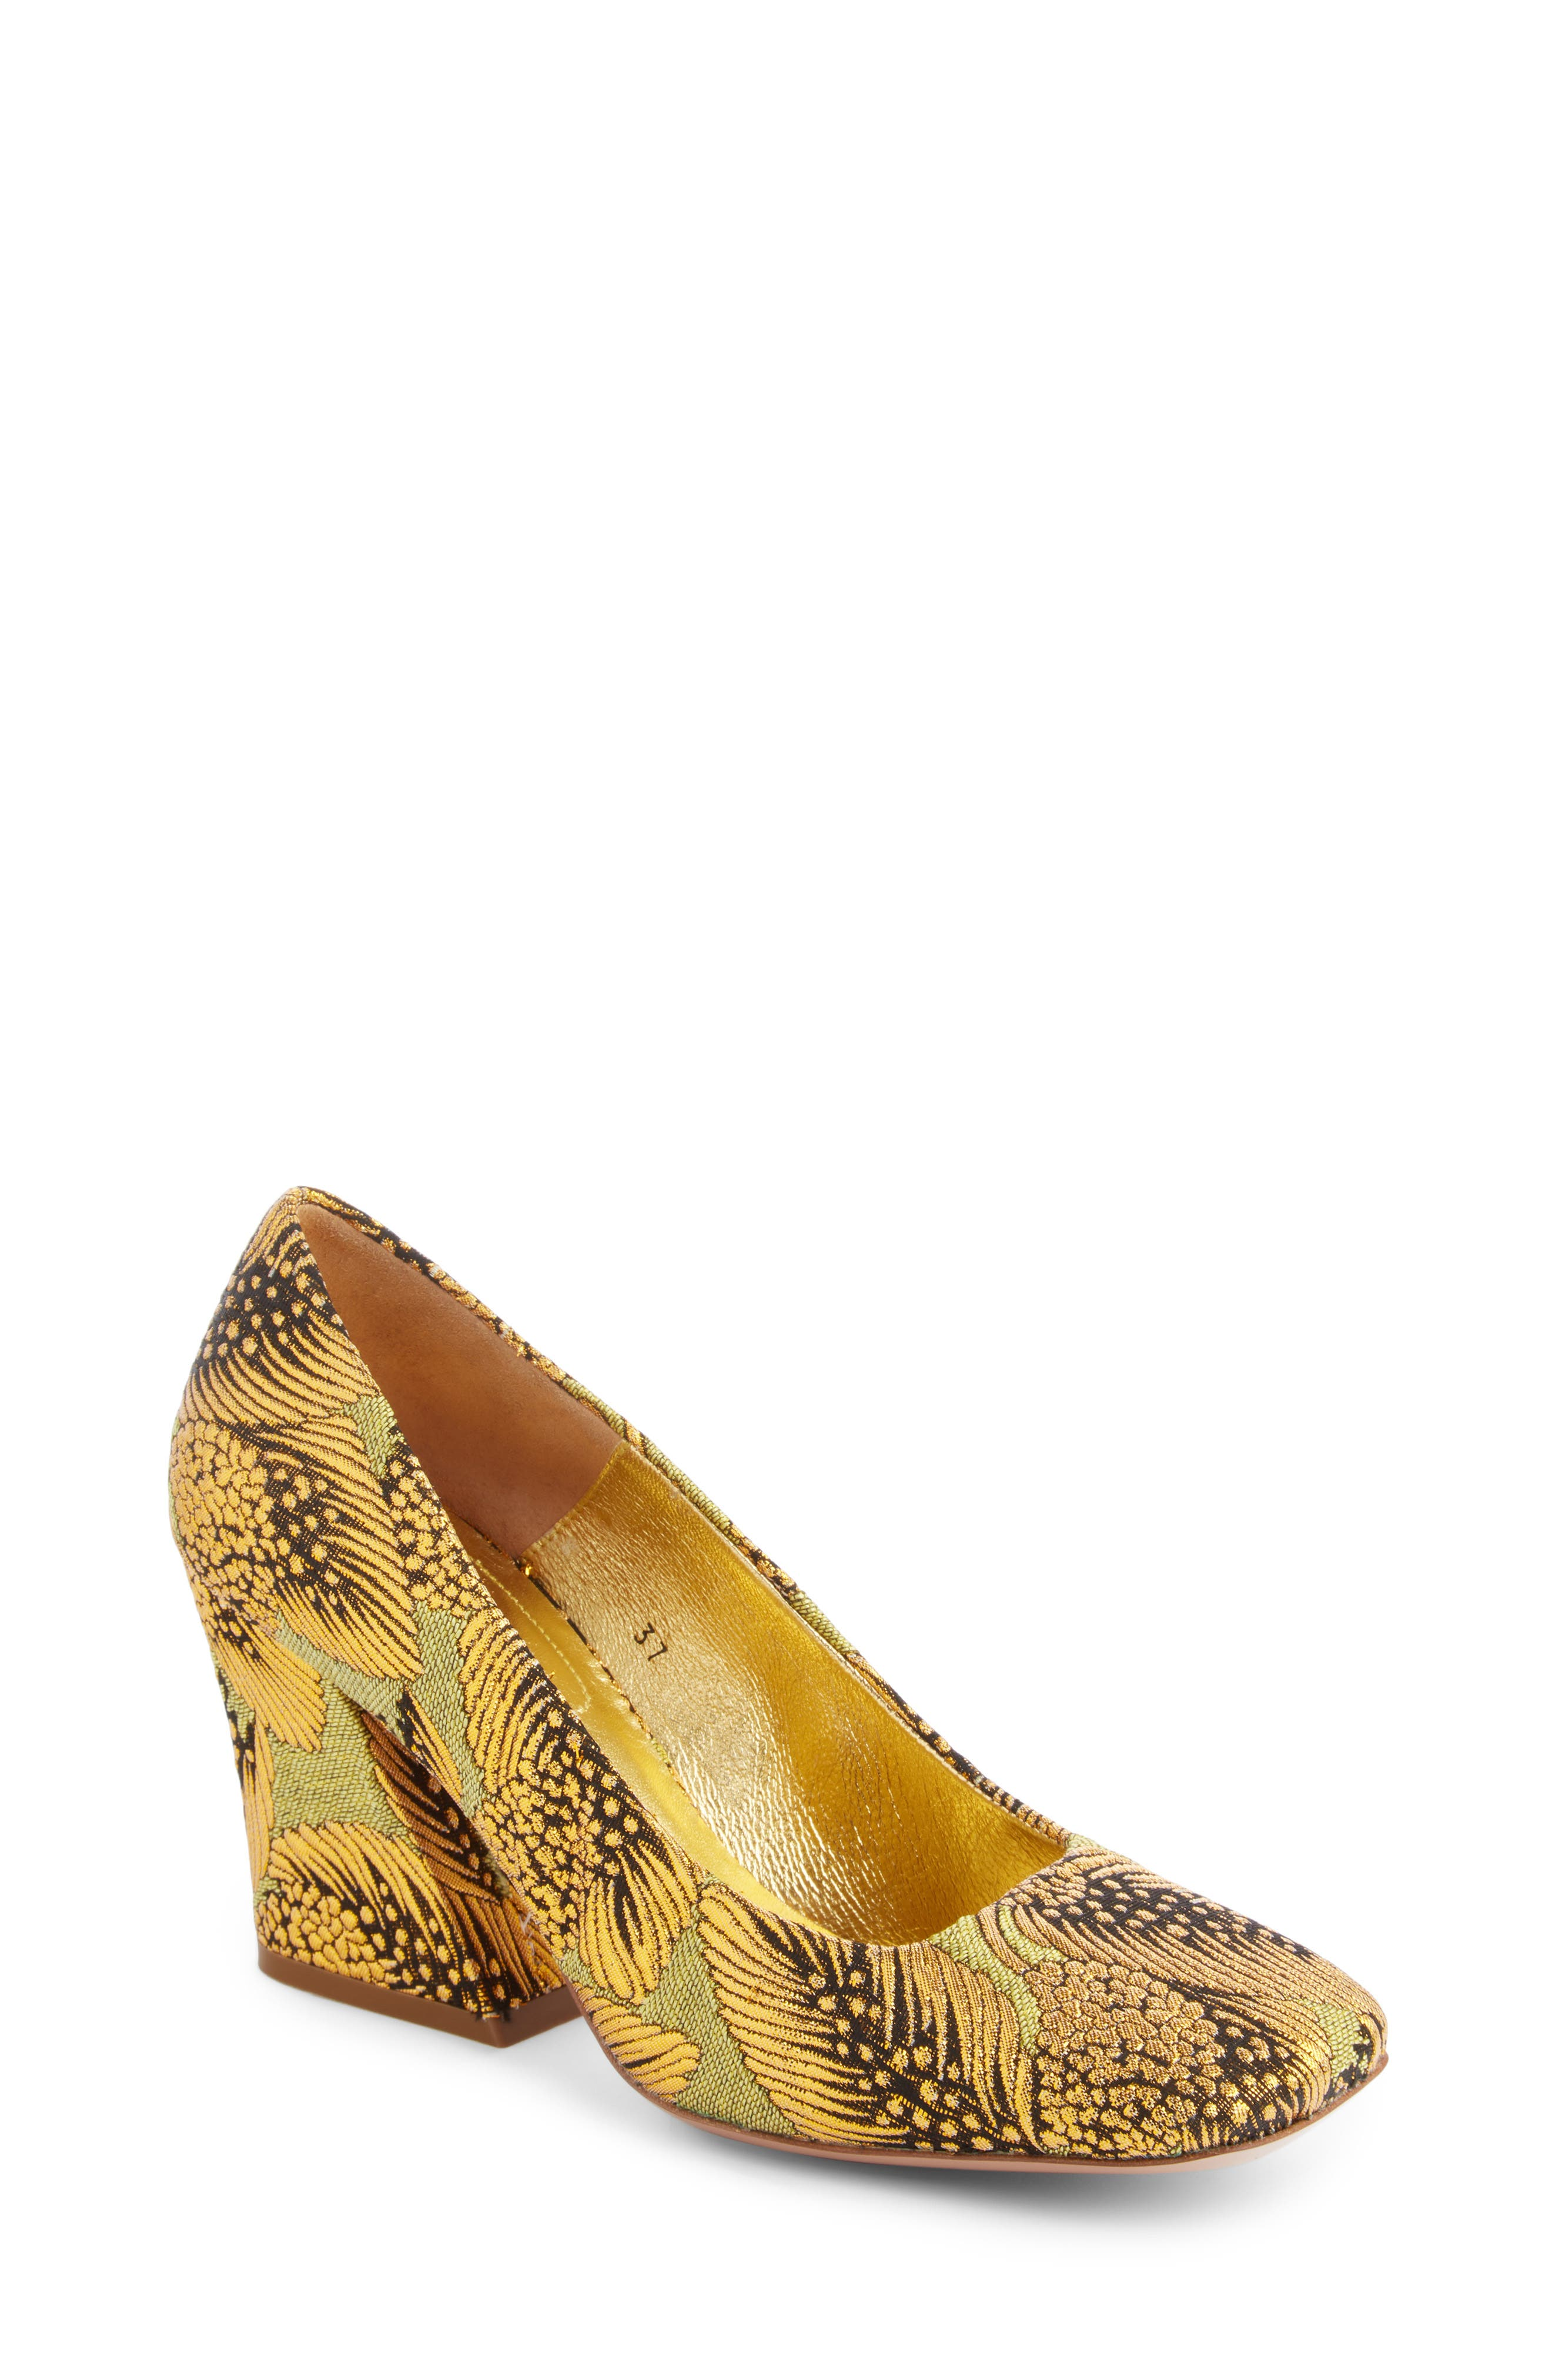 Leaf Print Angle Heel Pump,                             Main thumbnail 1, color,                             710